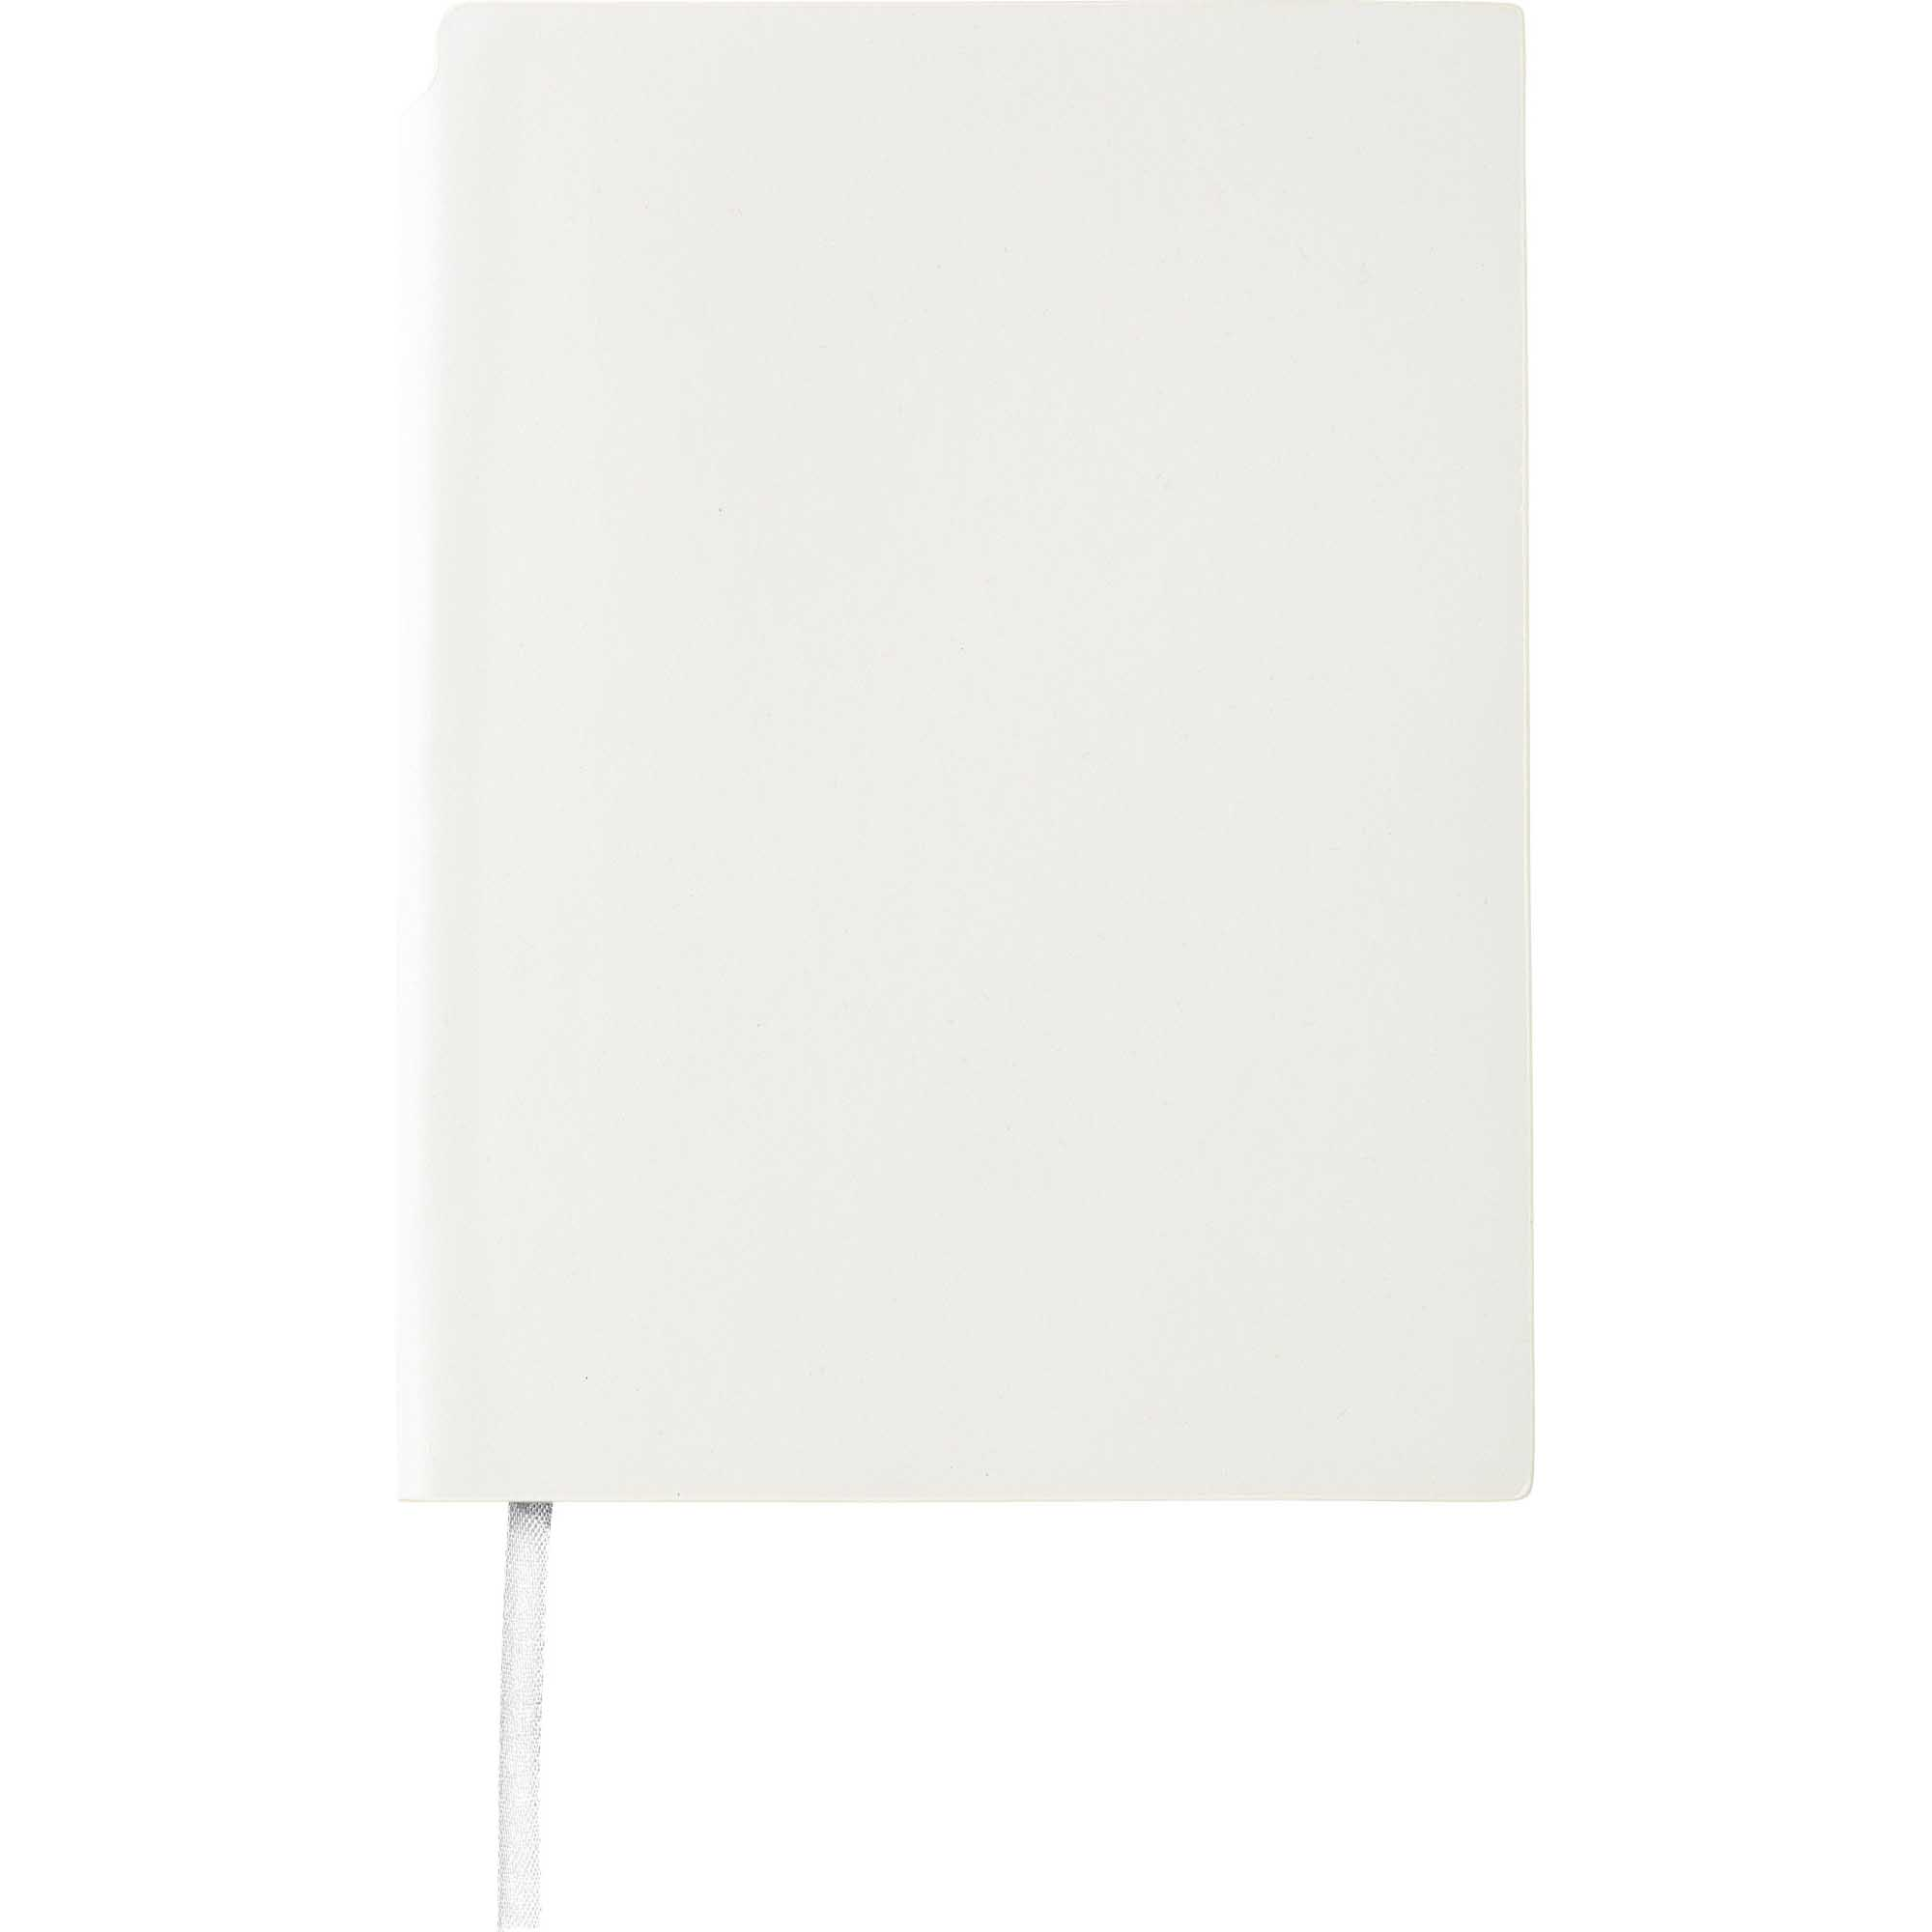 A5 PU note book - White giv-227802